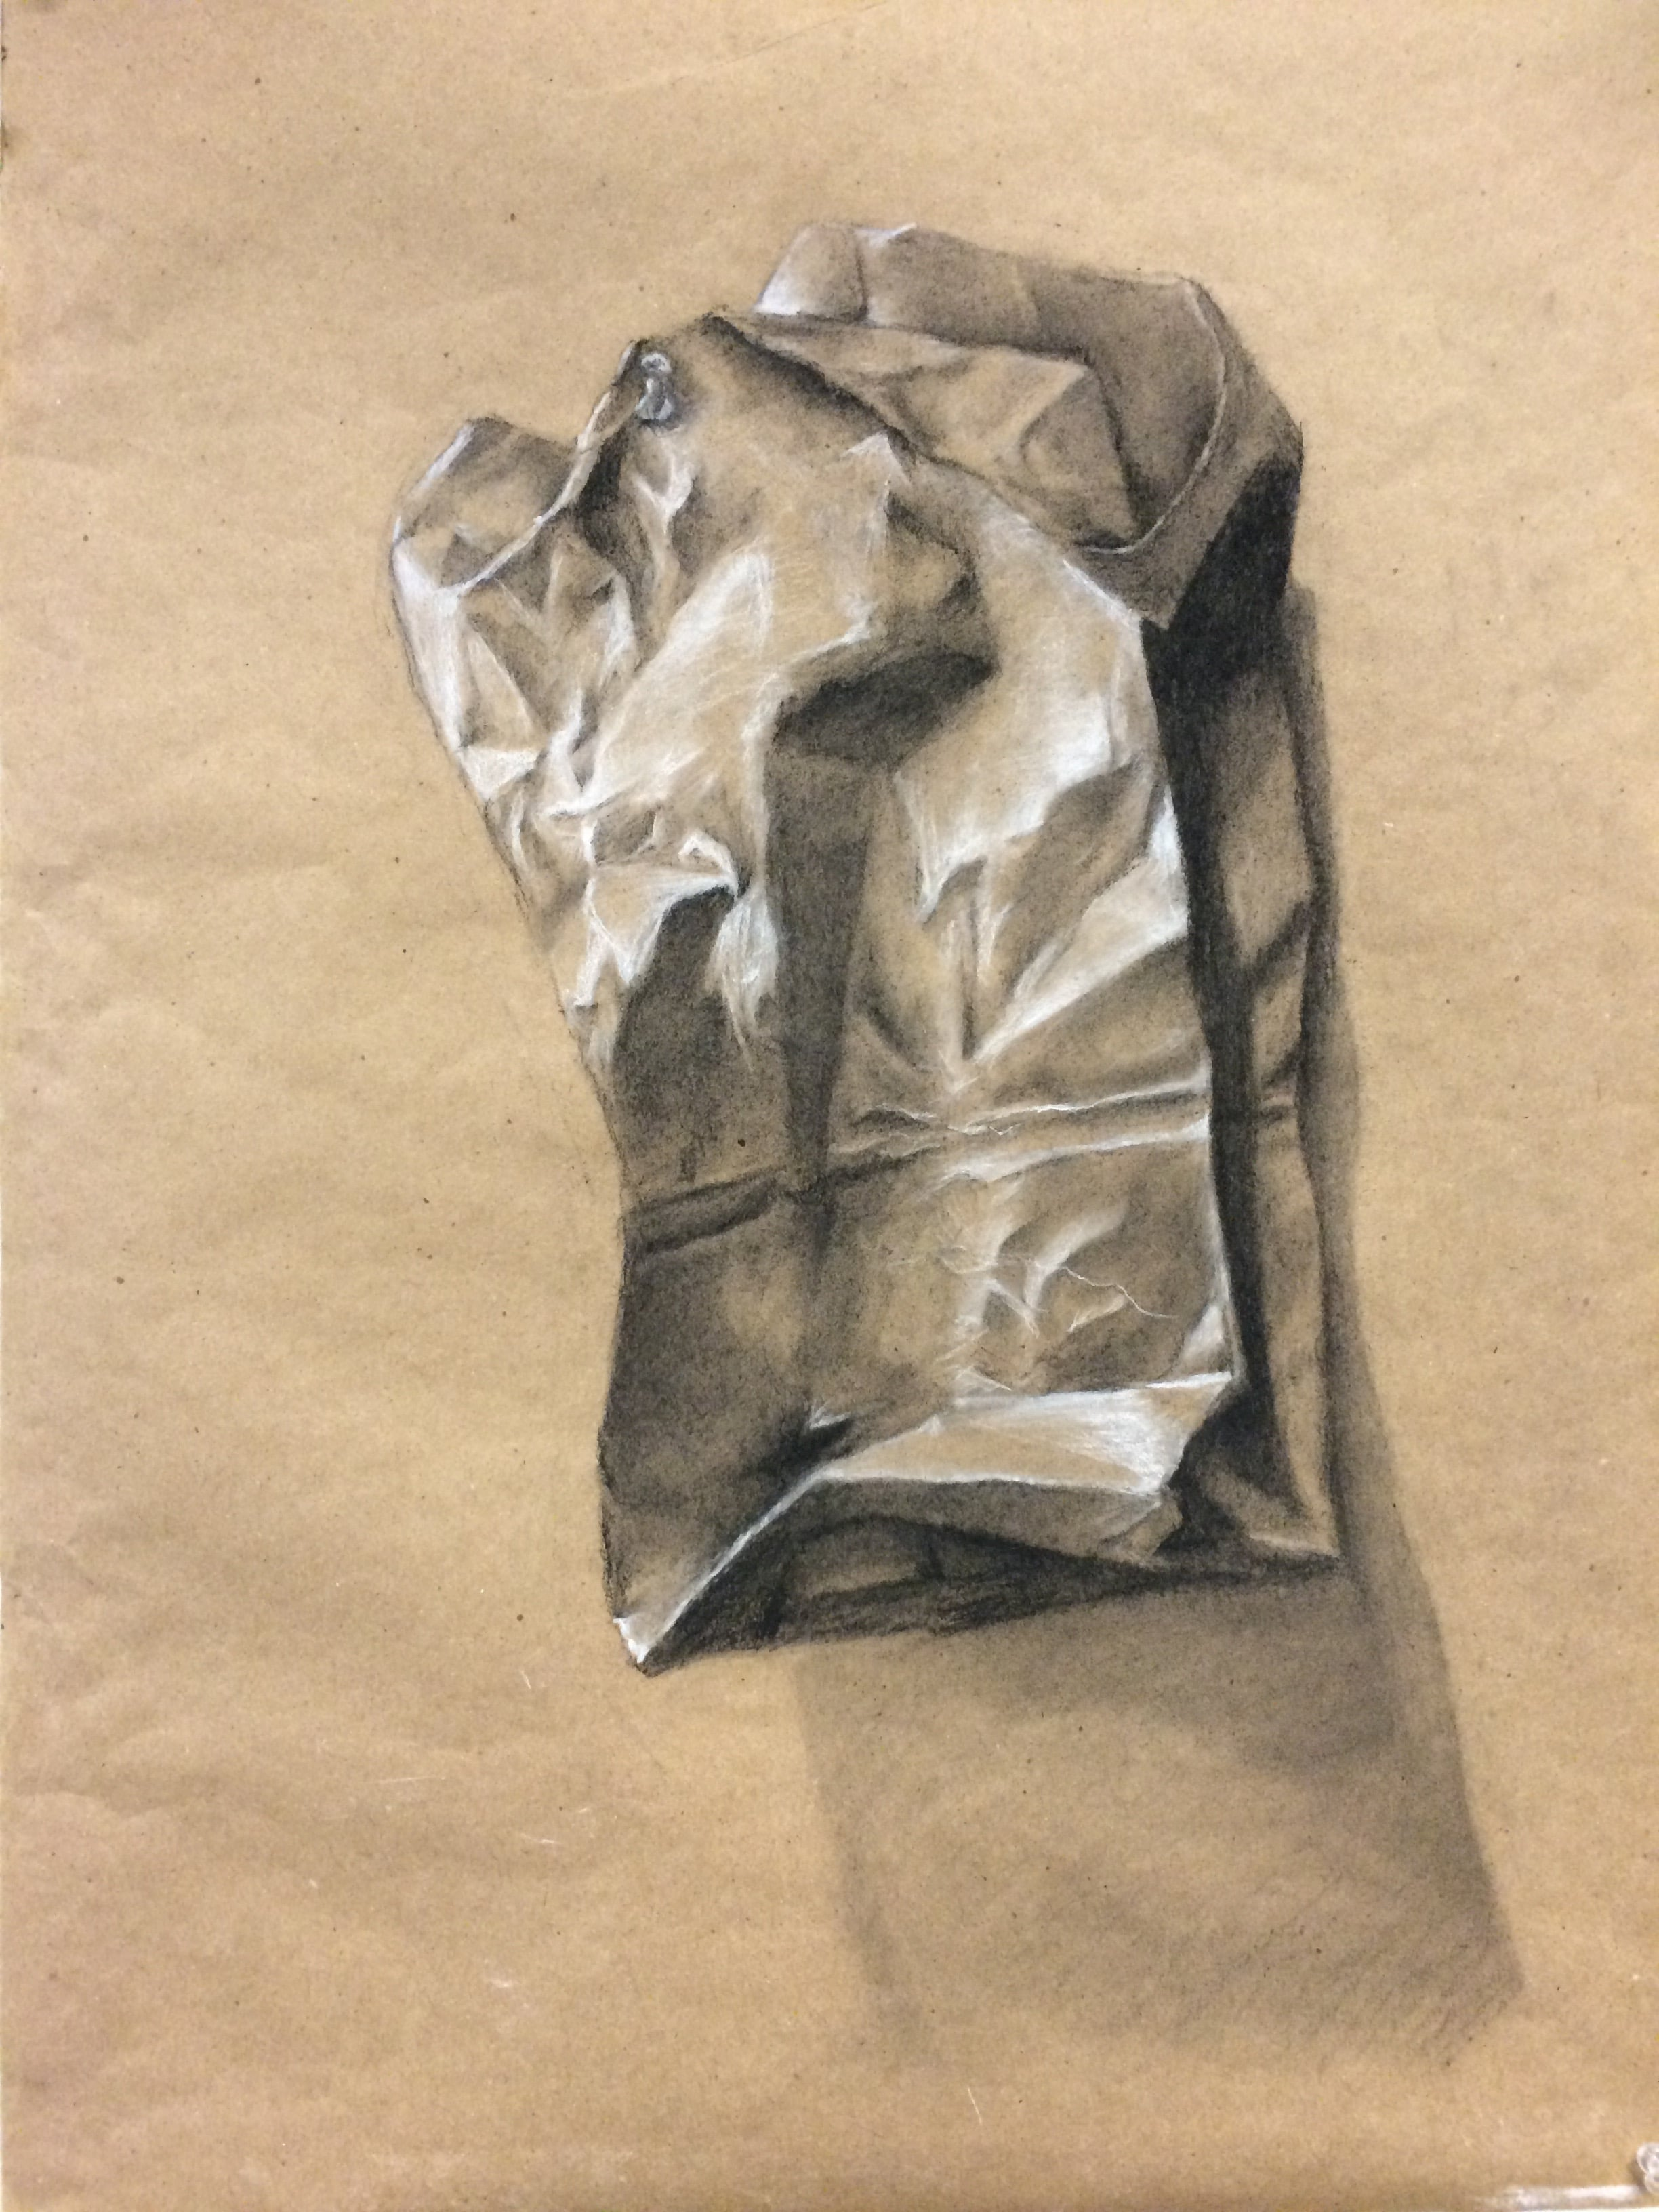 Student, Drawing I